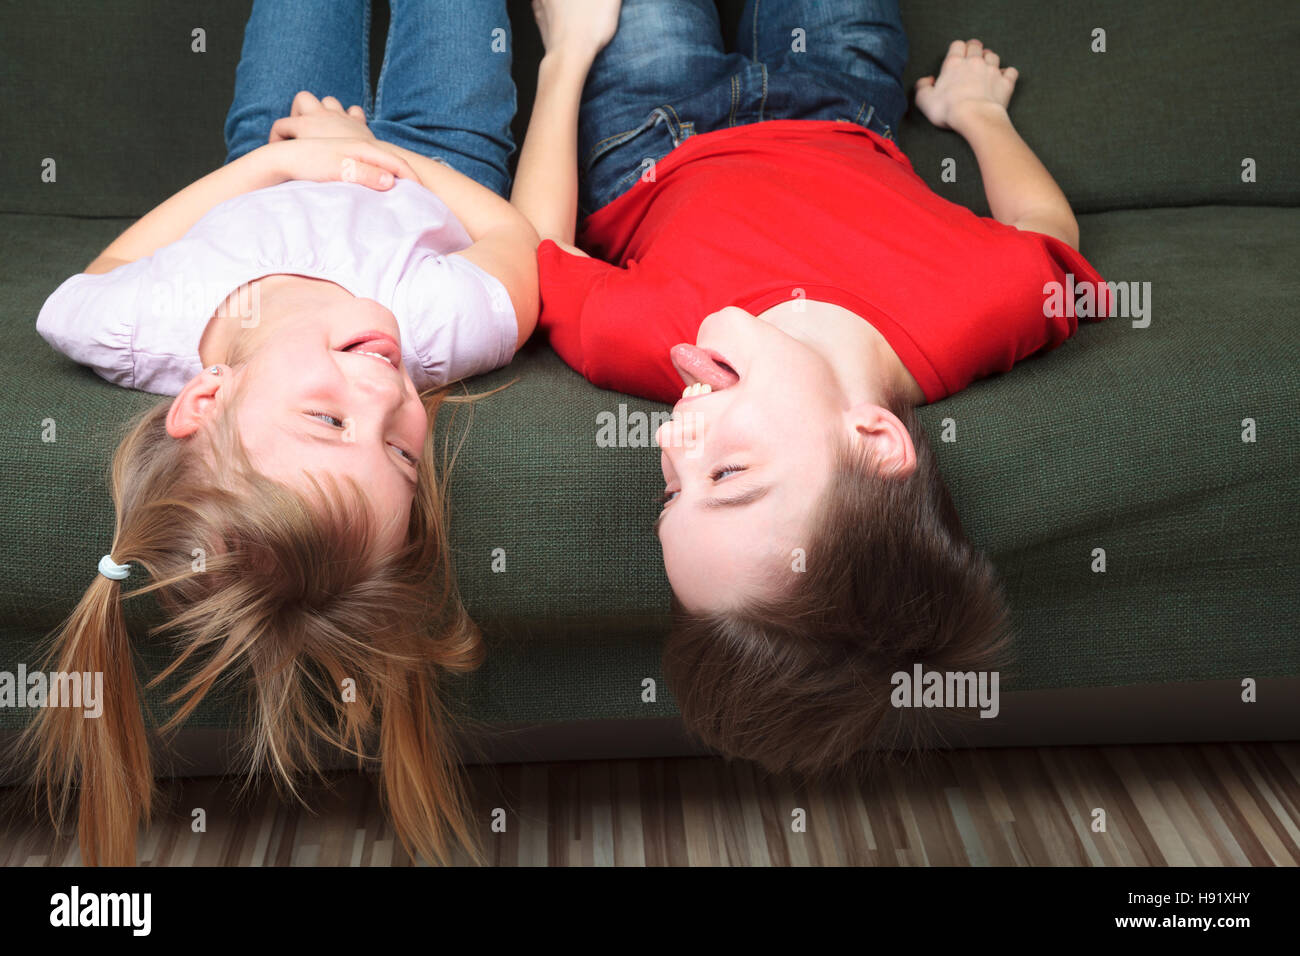 Brother and sister  wearing casual clothes  laying on a green sofa at home stick out tongues teasing each other - Stock Image